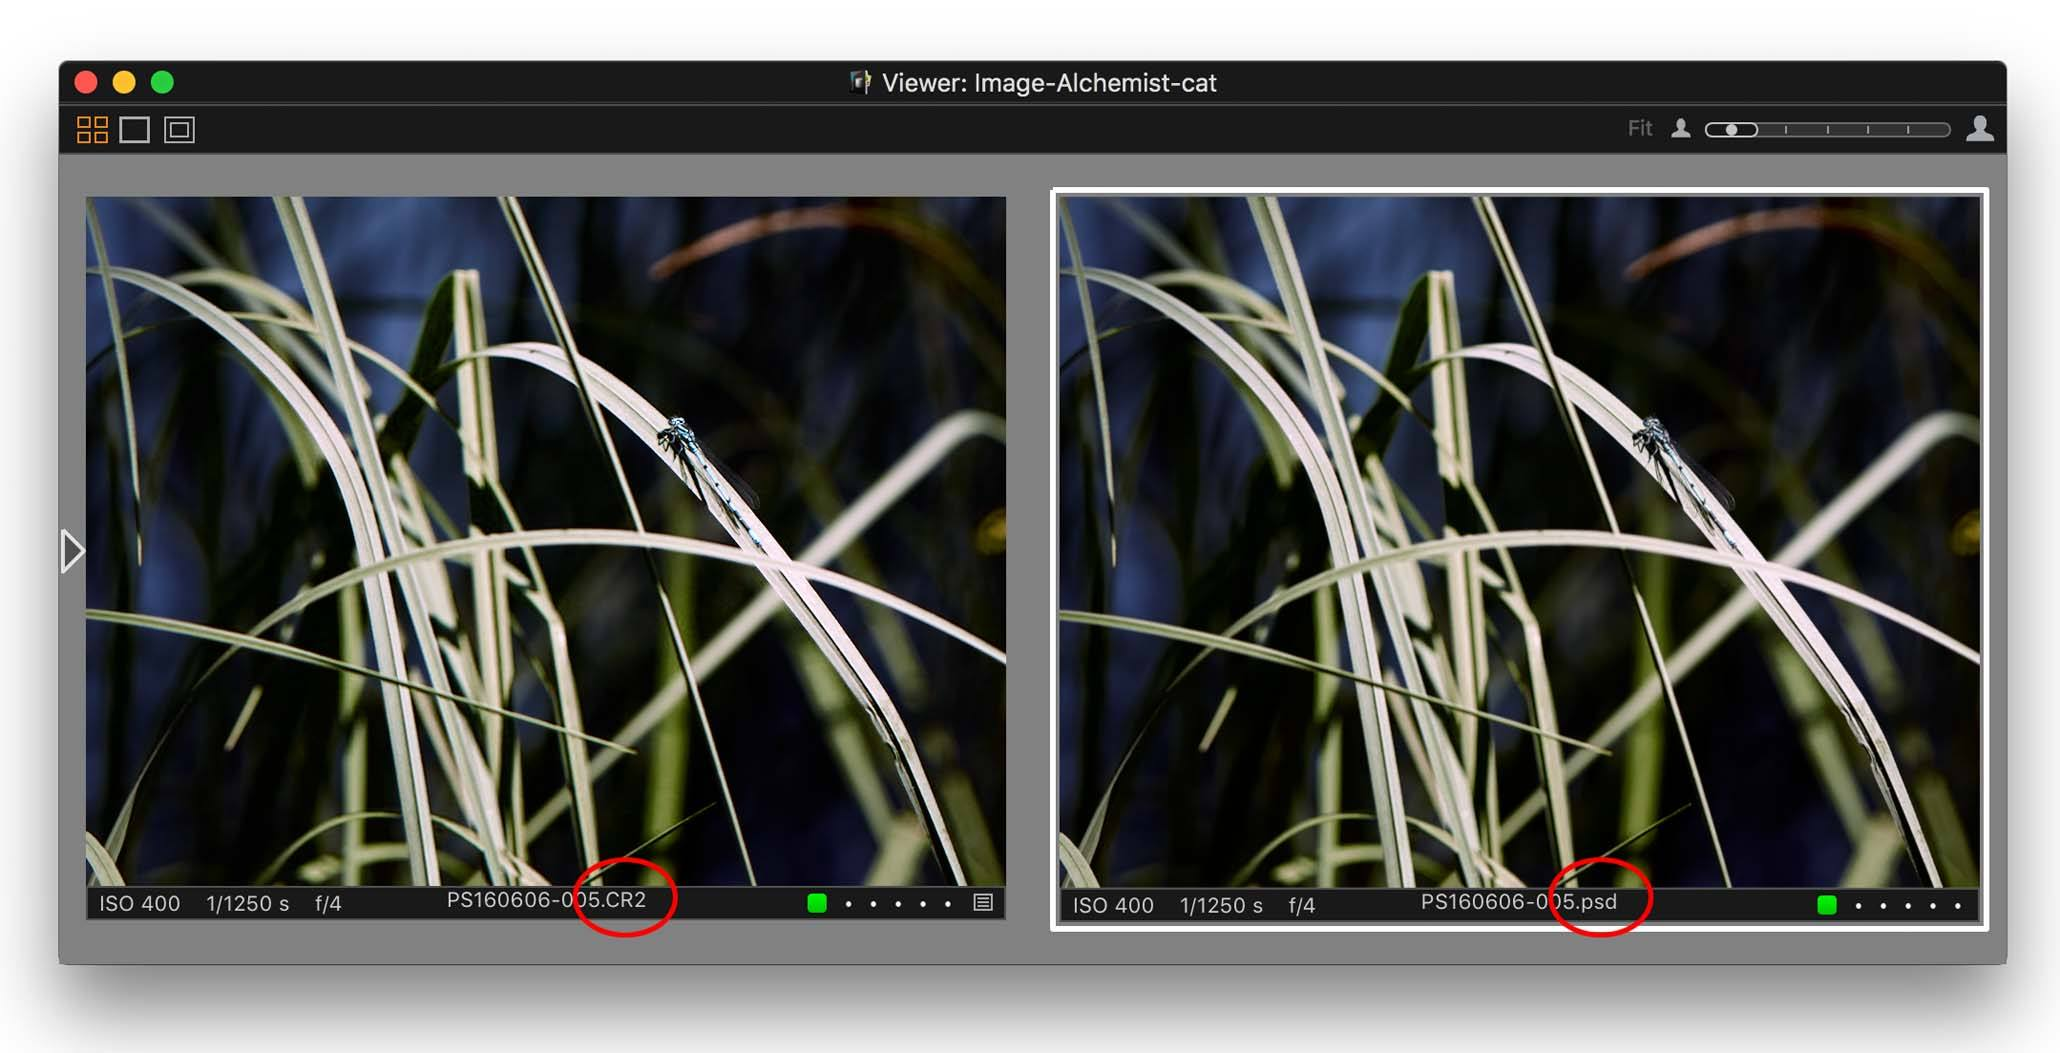 capture one pro 10.1 review, dragonfly, raw and psd